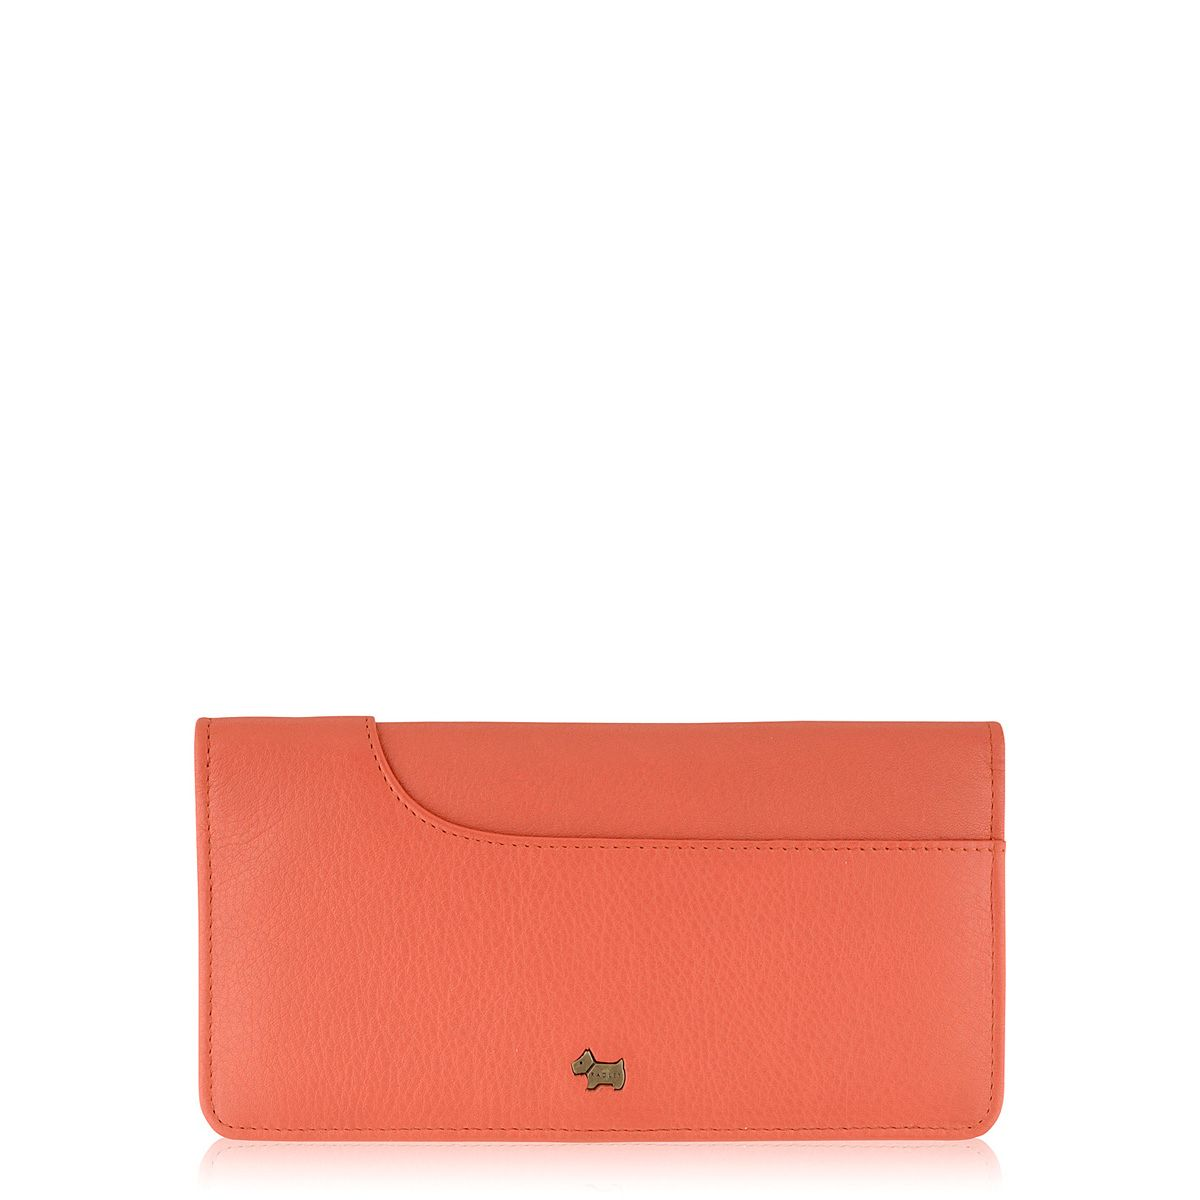 Pocket bag coral large flap over purse